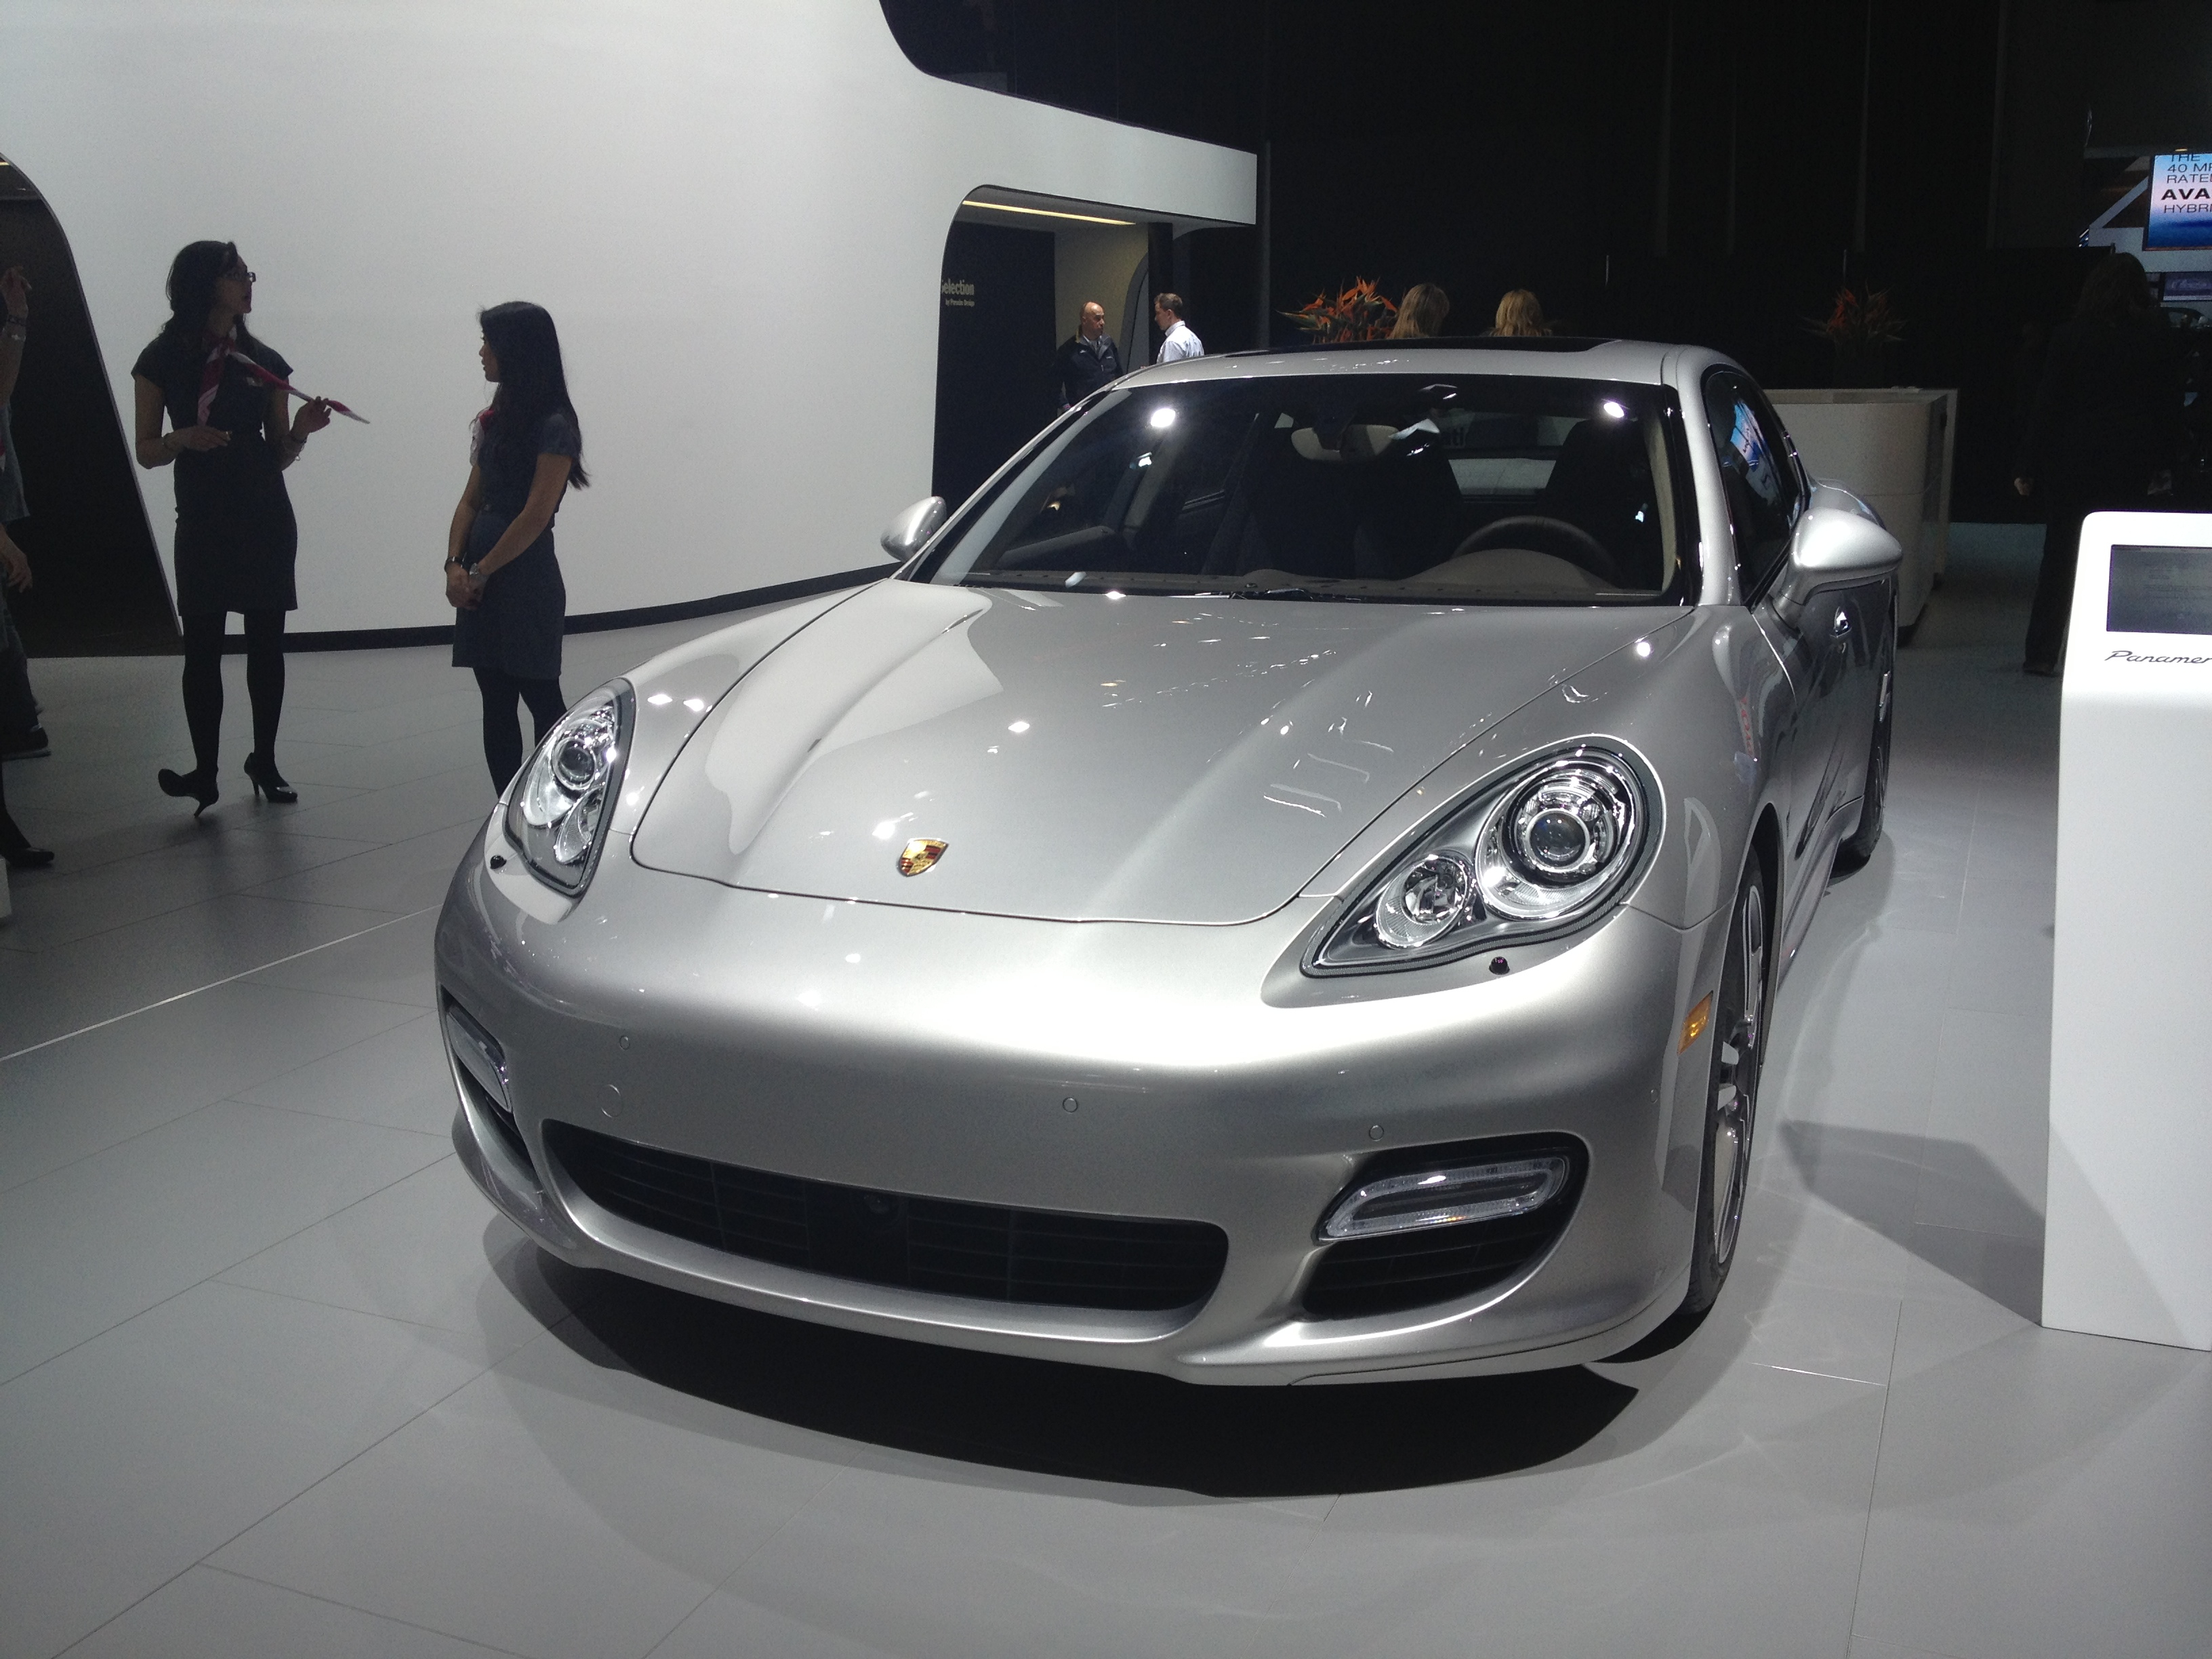 2013 Porsche Panamera Turbo S at NAIAS 2013 By sarahlarson